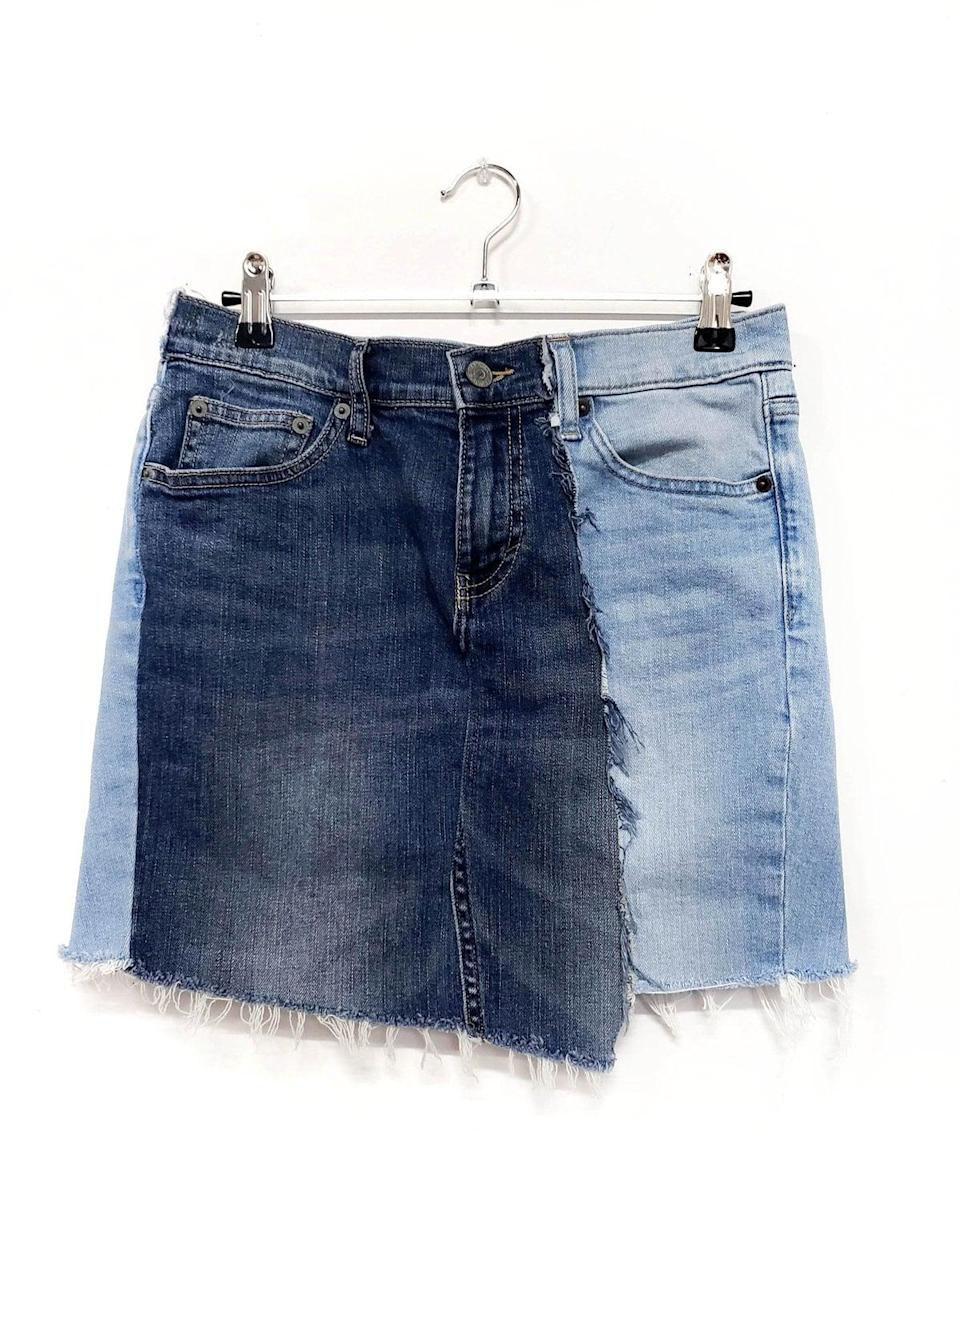 "<p>We love the two-tone design of this <a href=""https://www.popsugar.com/buy/Grant-Blvd-Distressed-Jean-Skirt-582016?p_name=Grant%20Blvd%20Distressed%20Jean%20Skirt&retailer=grantblvd.com&pid=582016&price=68&evar1=fab%3Aus&evar9=35329485&evar98=https%3A%2F%2Fwww.popsugar.com%2Ffashion%2Fphoto-gallery%2F35329485%2Fimage%2F47550222%2FGrant-Blvd-Distressed-Jean-Skirt&list1=shopping%2Cdenim%2Csummer%20fashion%2Cfashion%20shopping&prop13=mobile&pdata=1"" class=""link rapid-noclick-resp"" rel=""nofollow noopener"" target=""_blank"" data-ylk=""slk:Grant Blvd Distressed Jean Skirt"">Grant Blvd Distressed Jean Skirt</a> ($68).</p>"